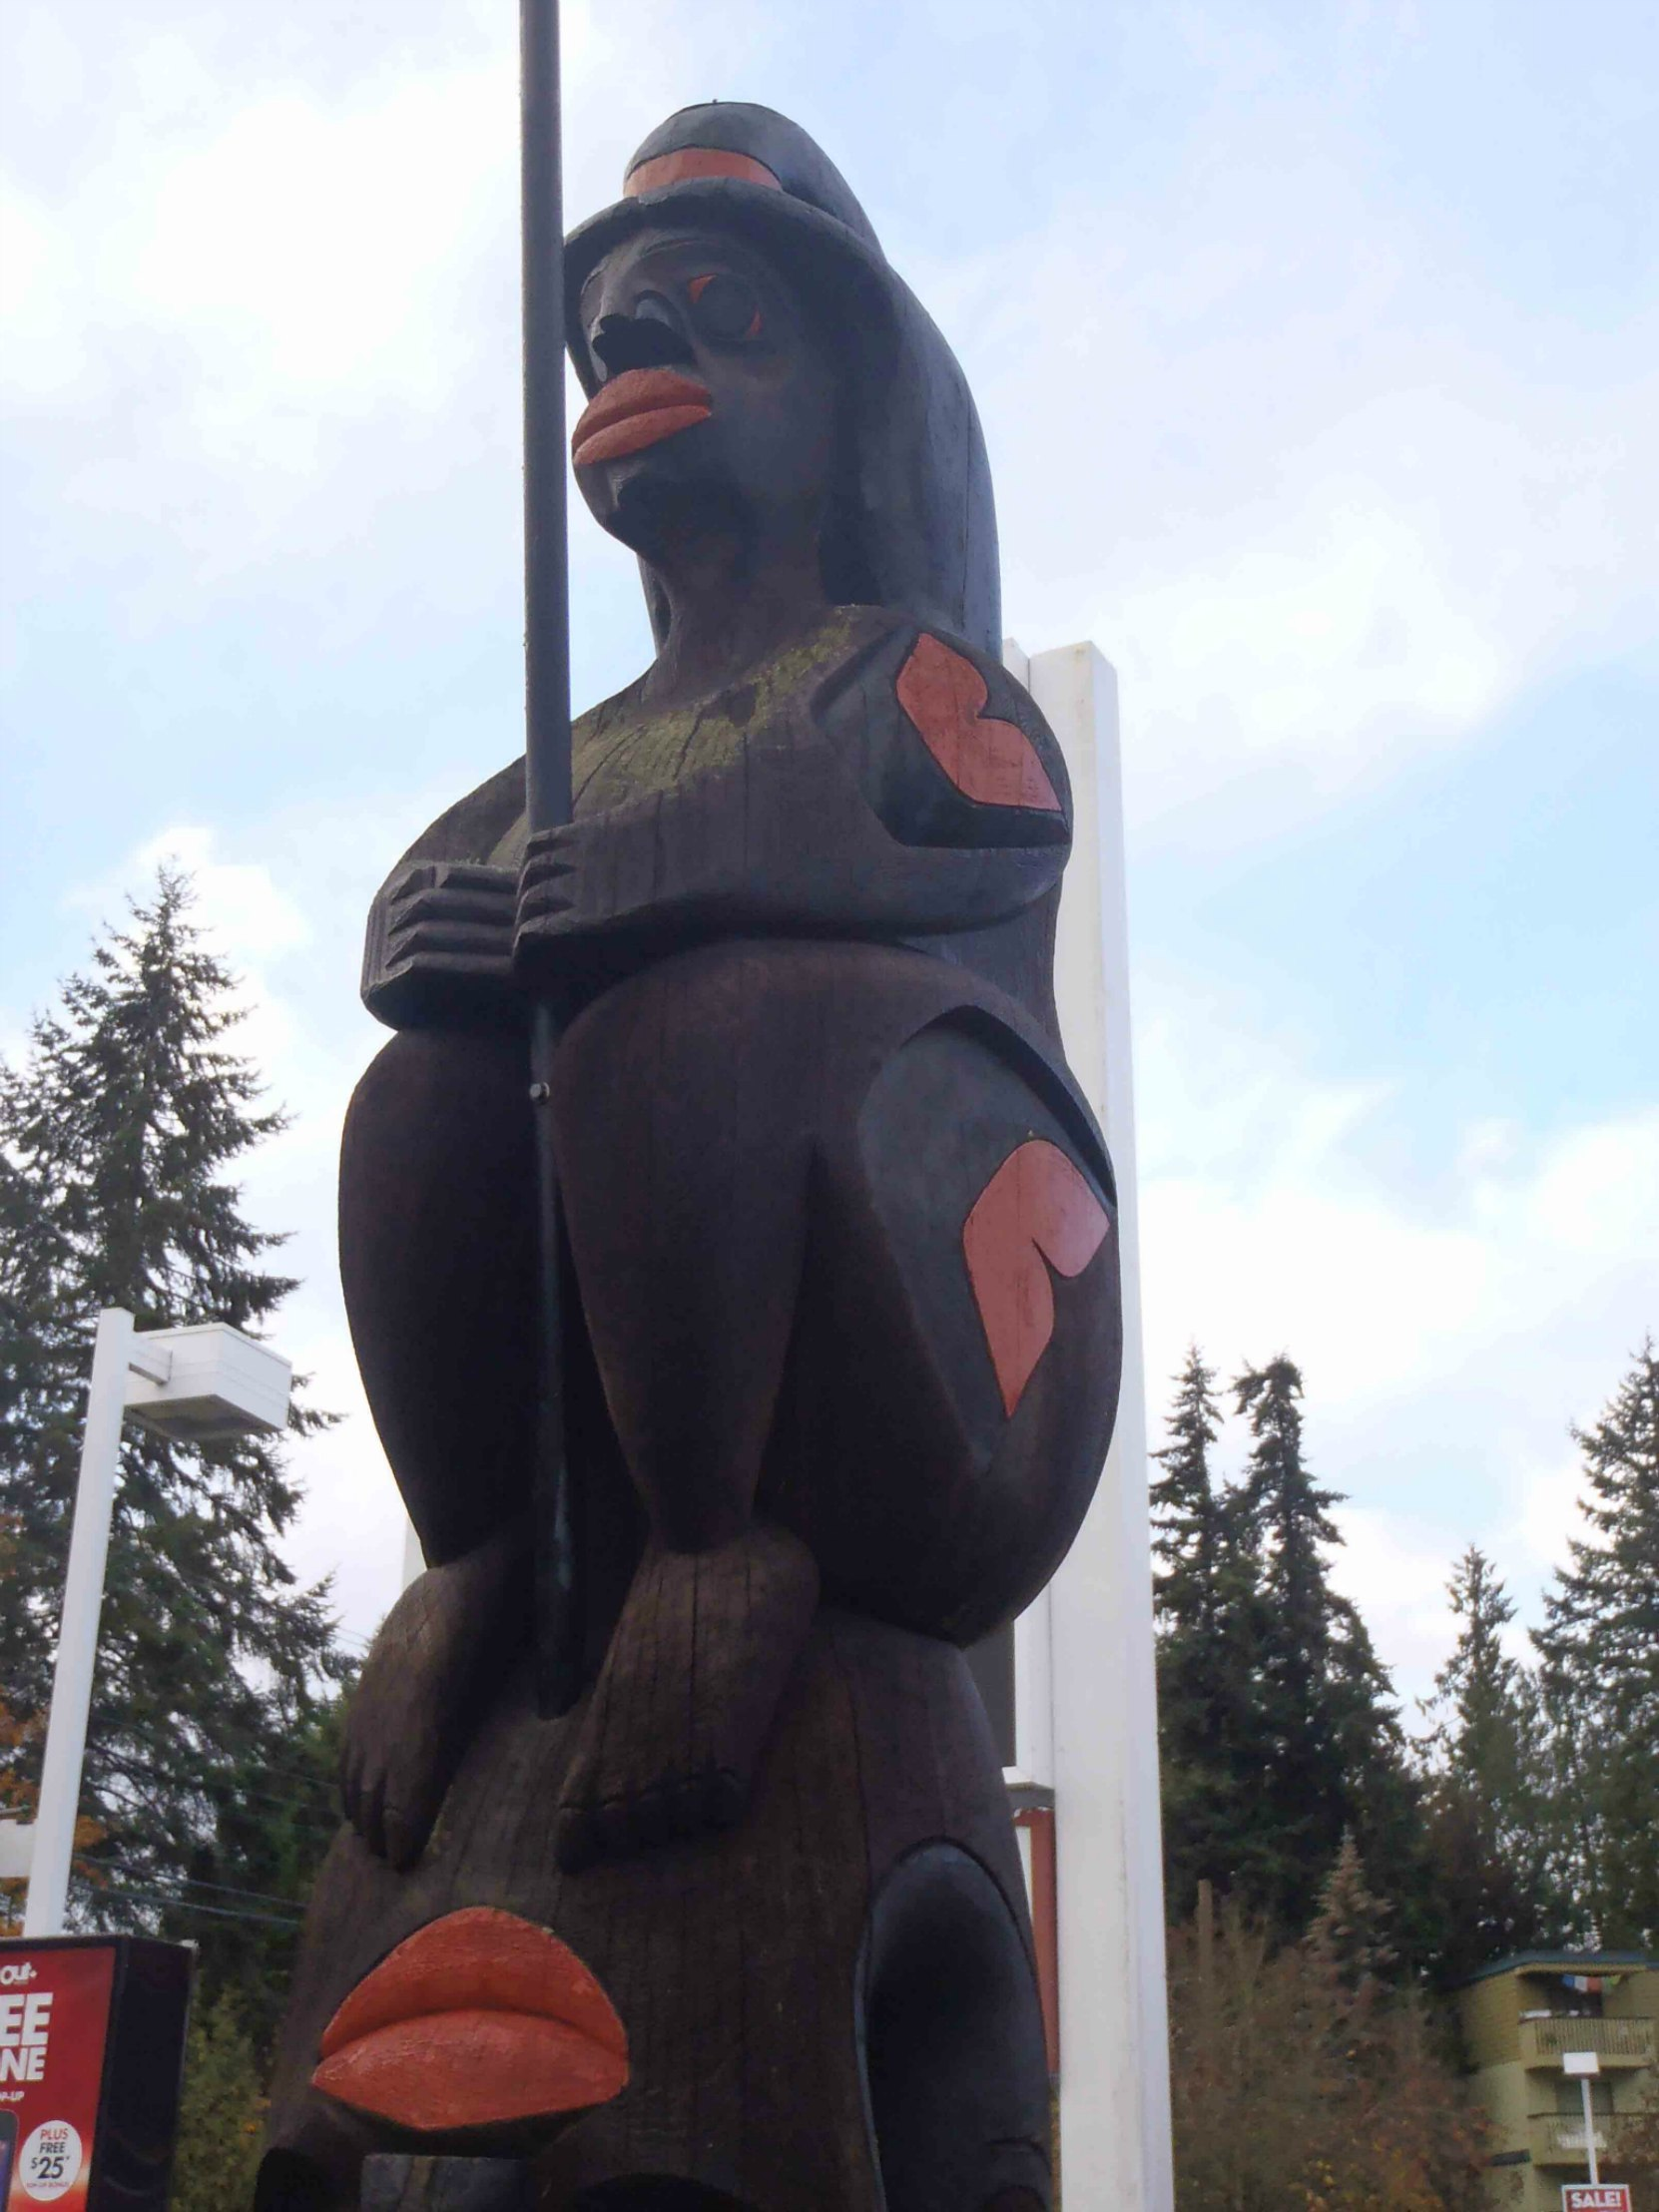 Fisherman's Pole, Fisherman figure, Government Street at College Street, Duncan, B.C.